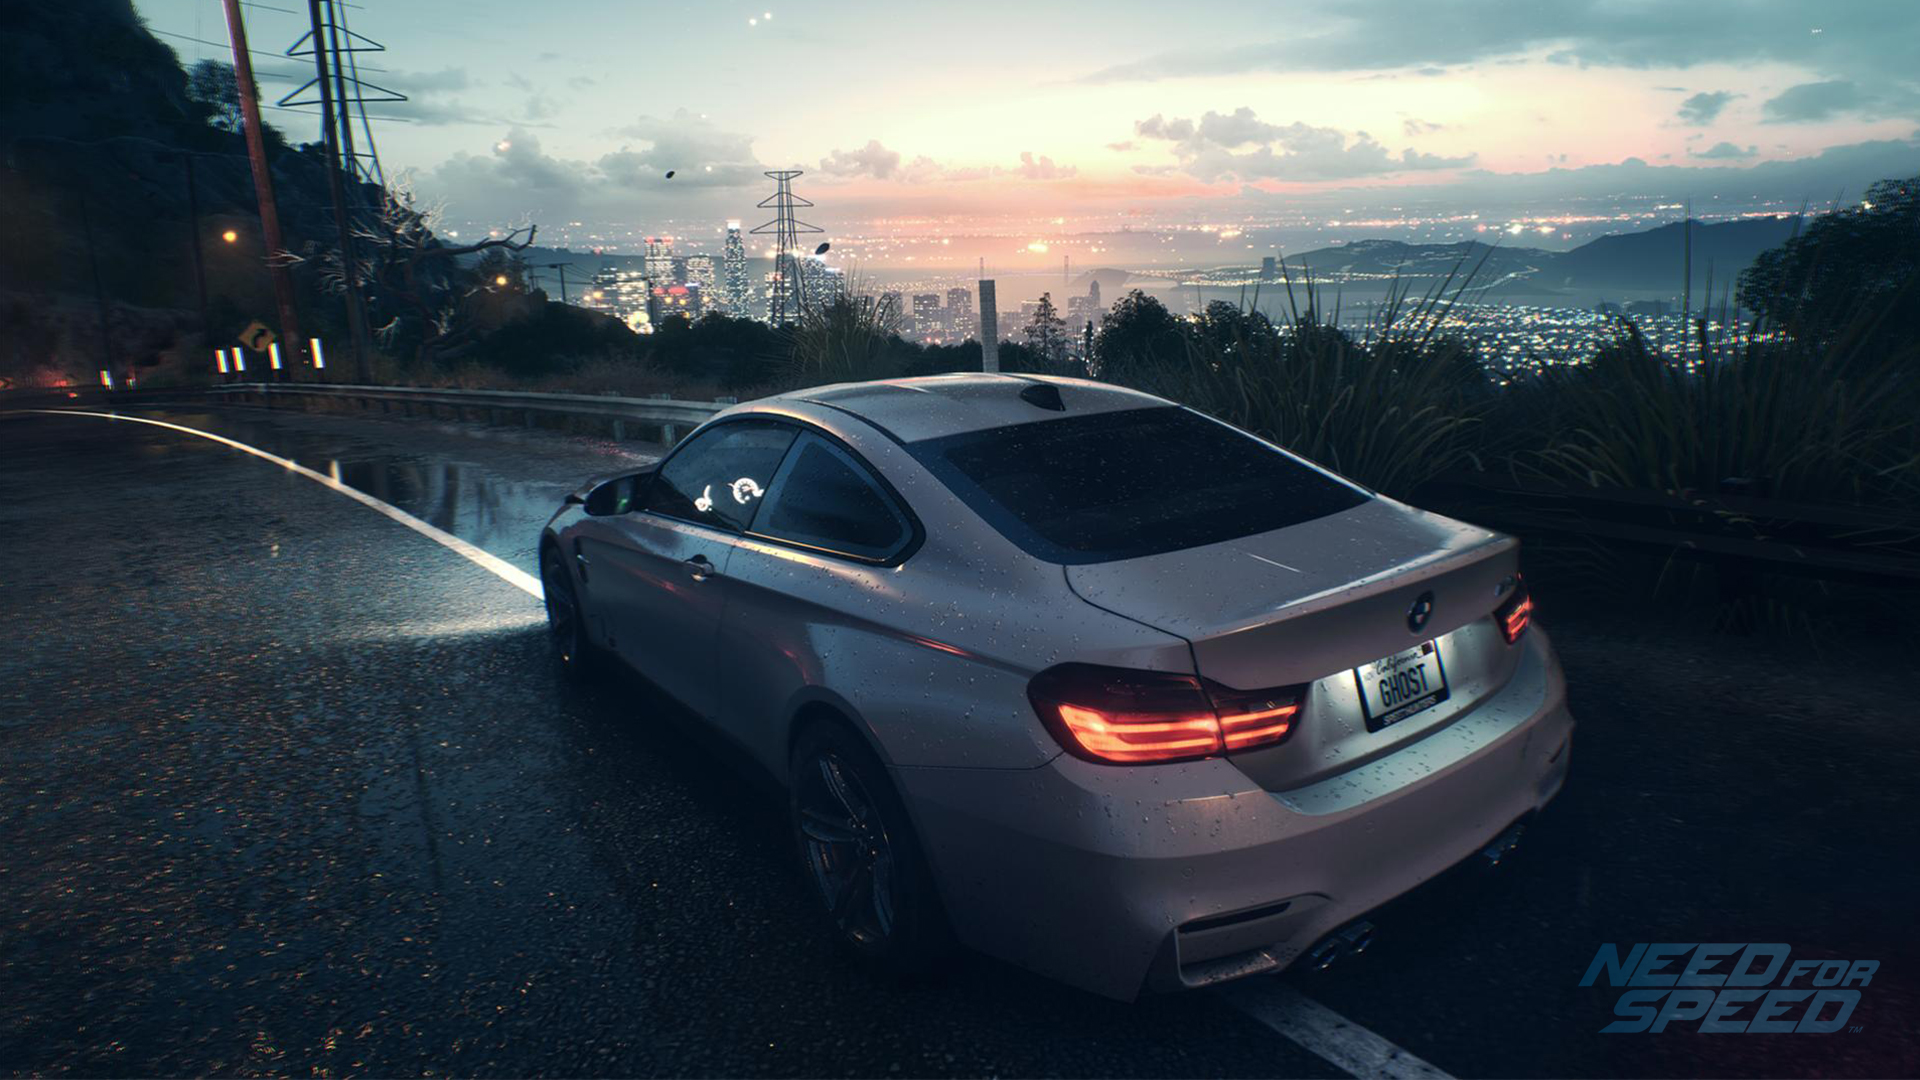 01_BMW_M4_sh003_v001_world